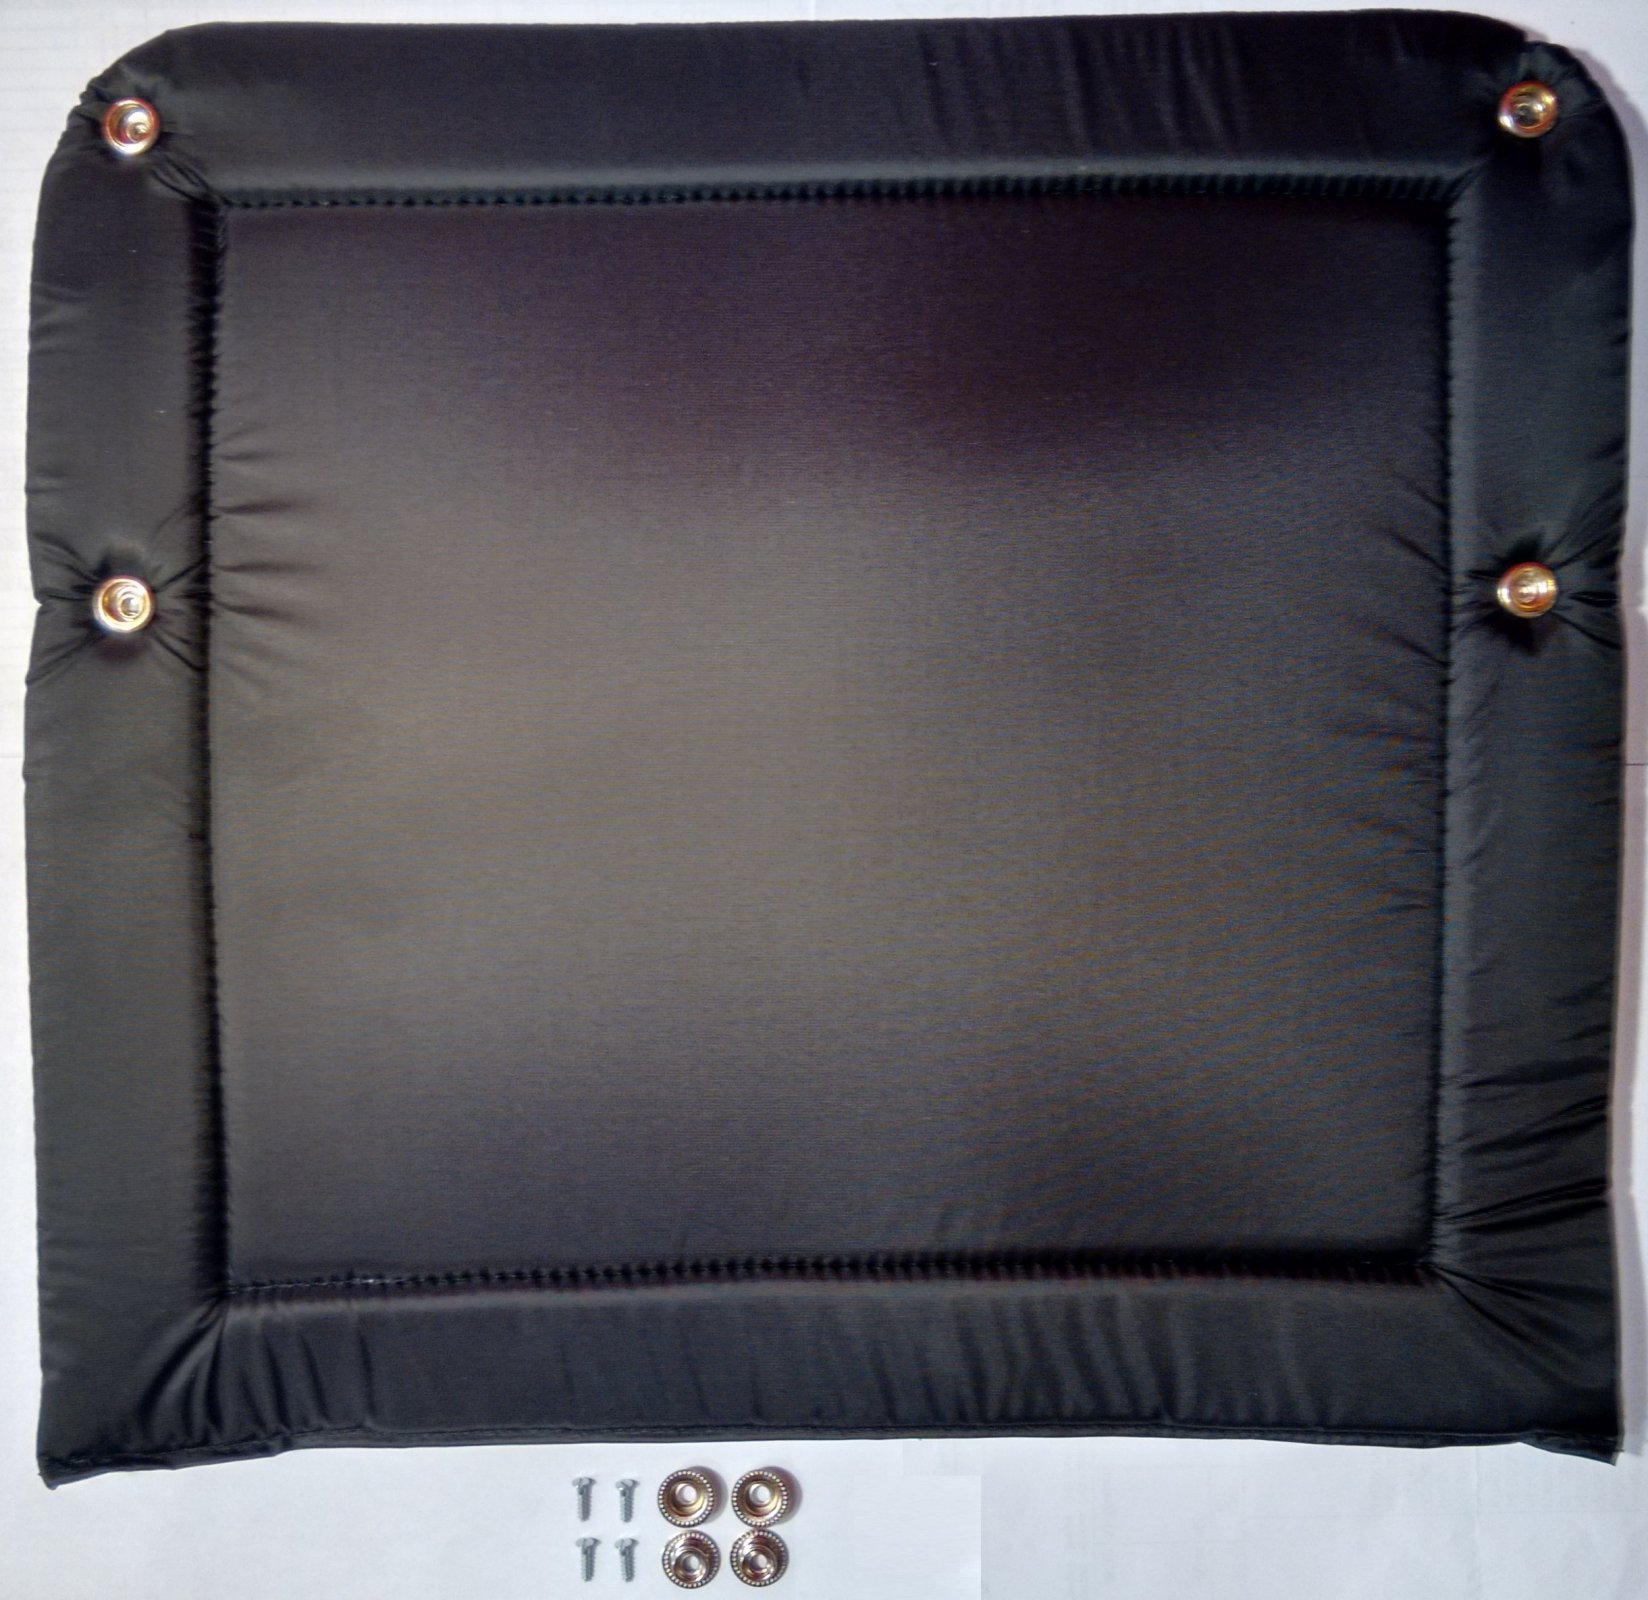 NEW Black Accordion Back Pad Width (15.5in/39cm) Length (12.5in/32cm)